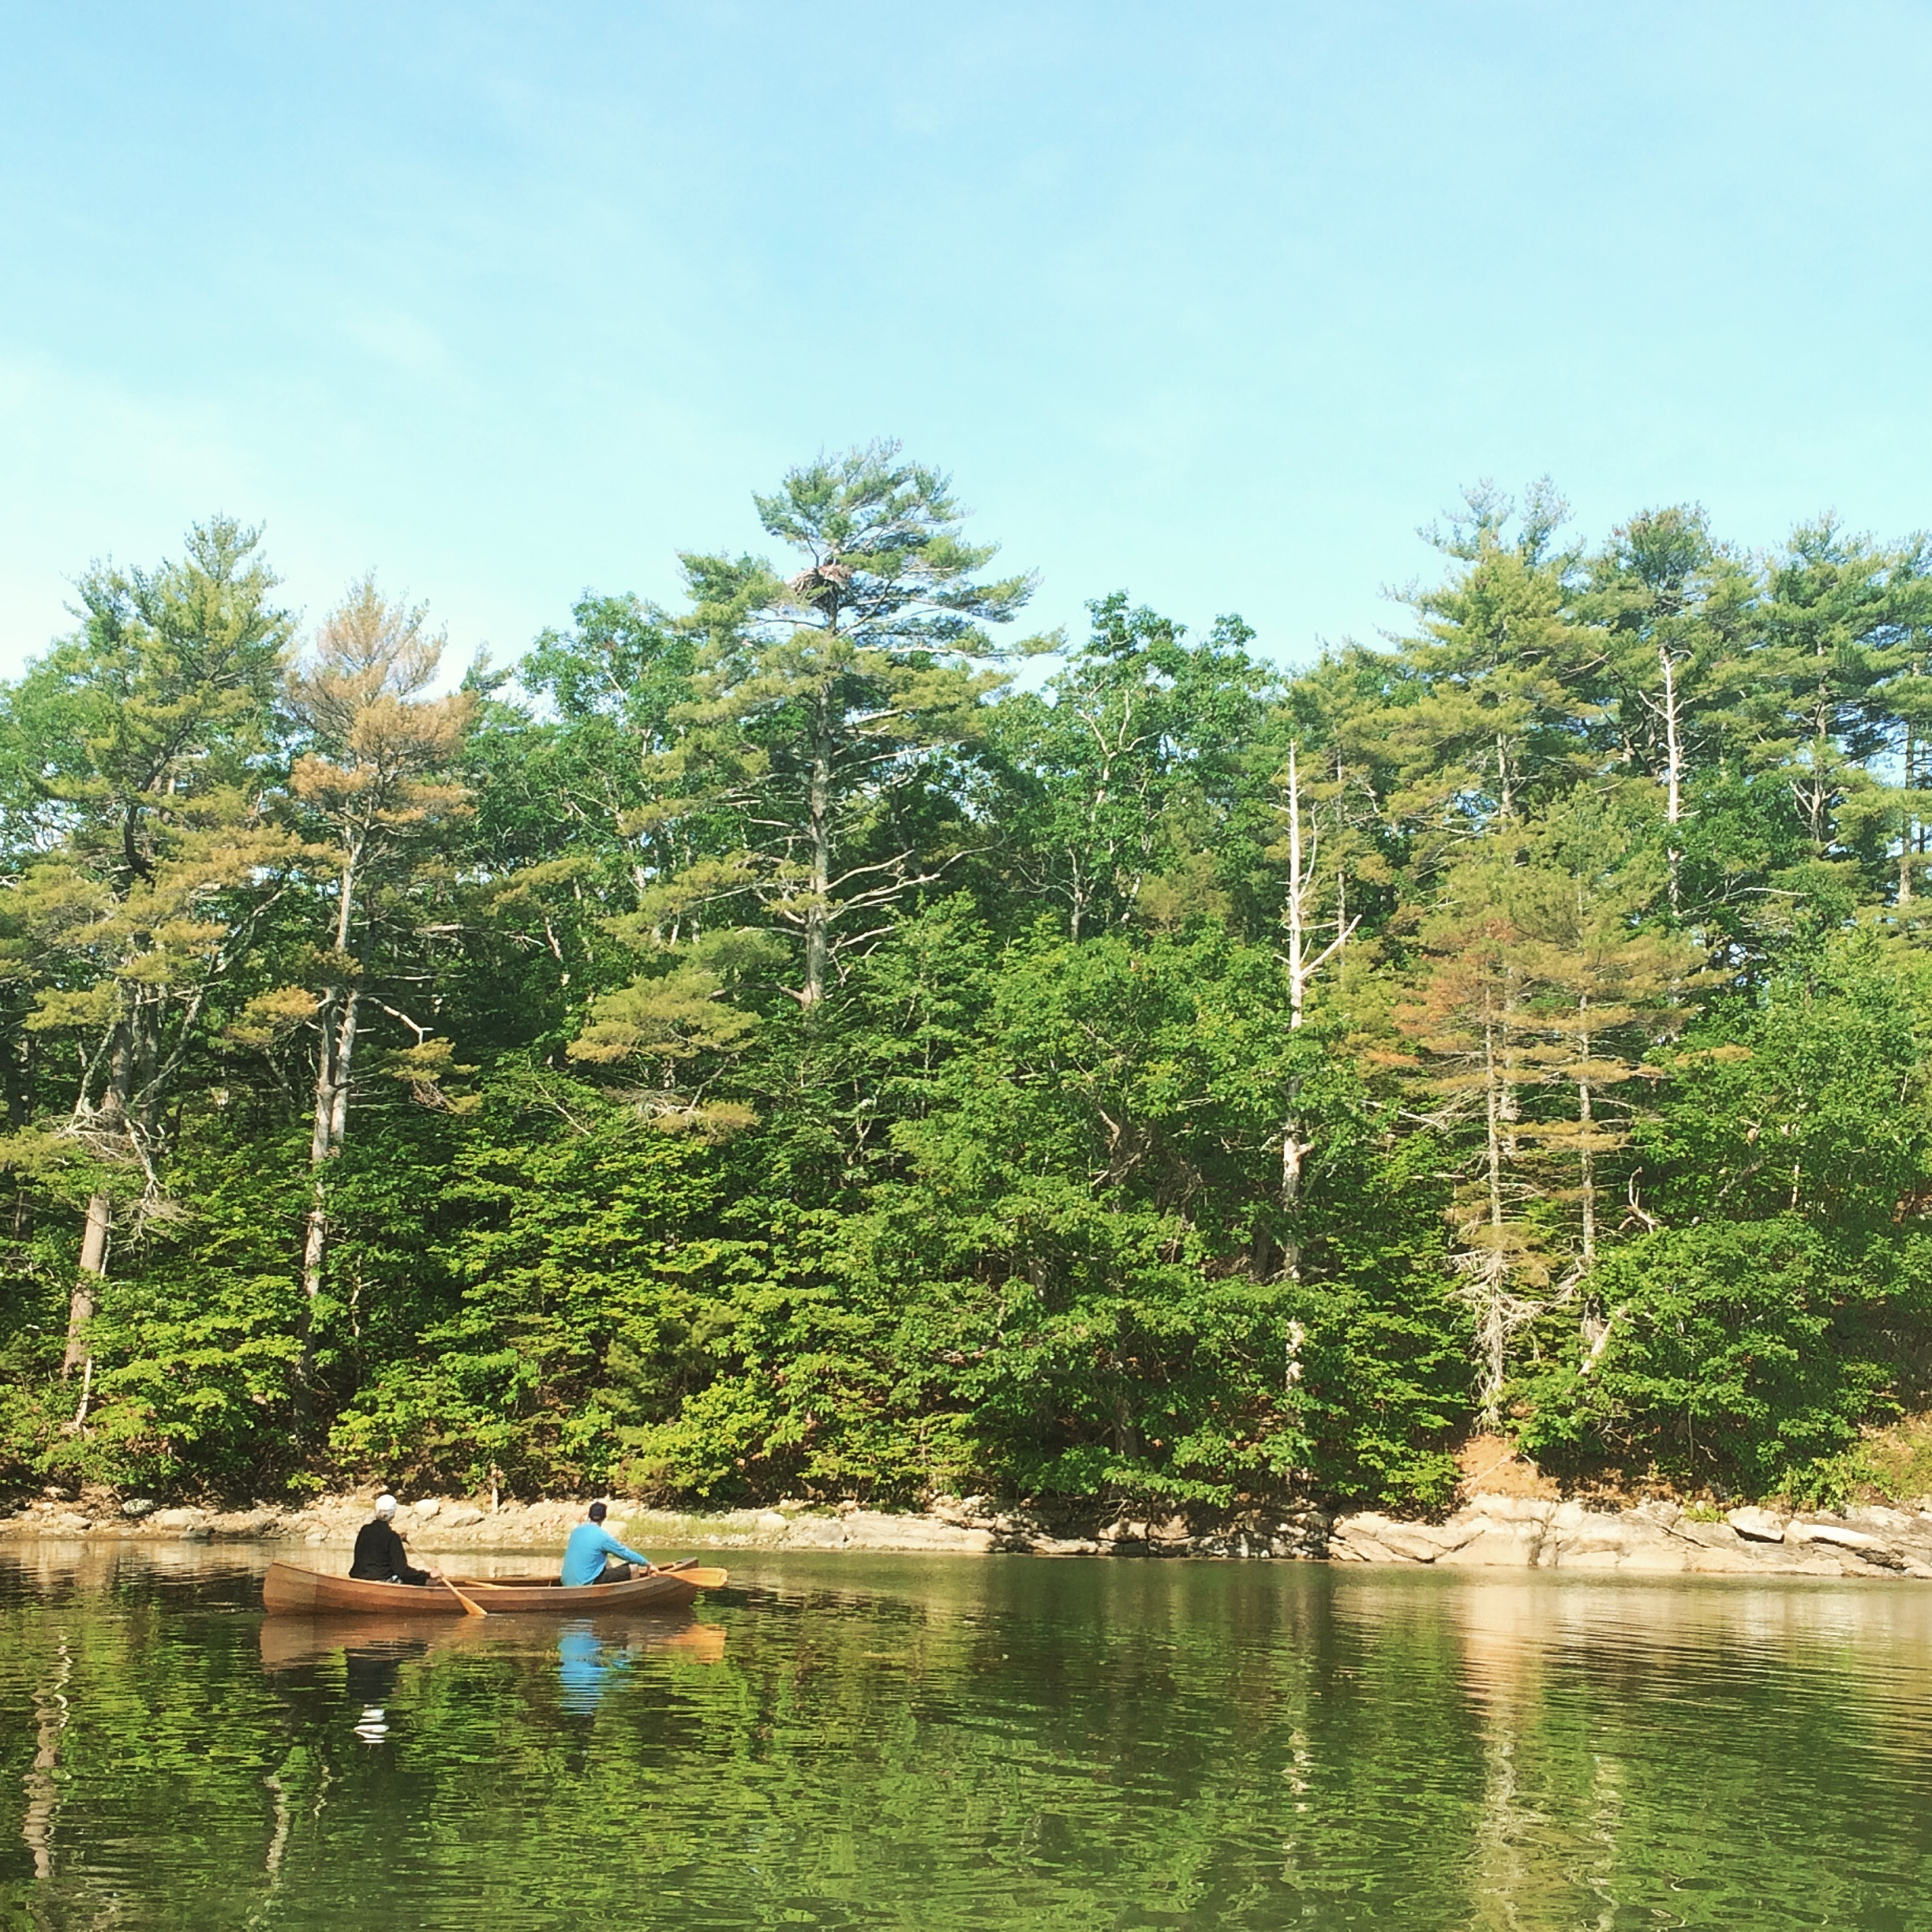 Paddling in the Damariscotta with an eagle's nest as a point of interest.